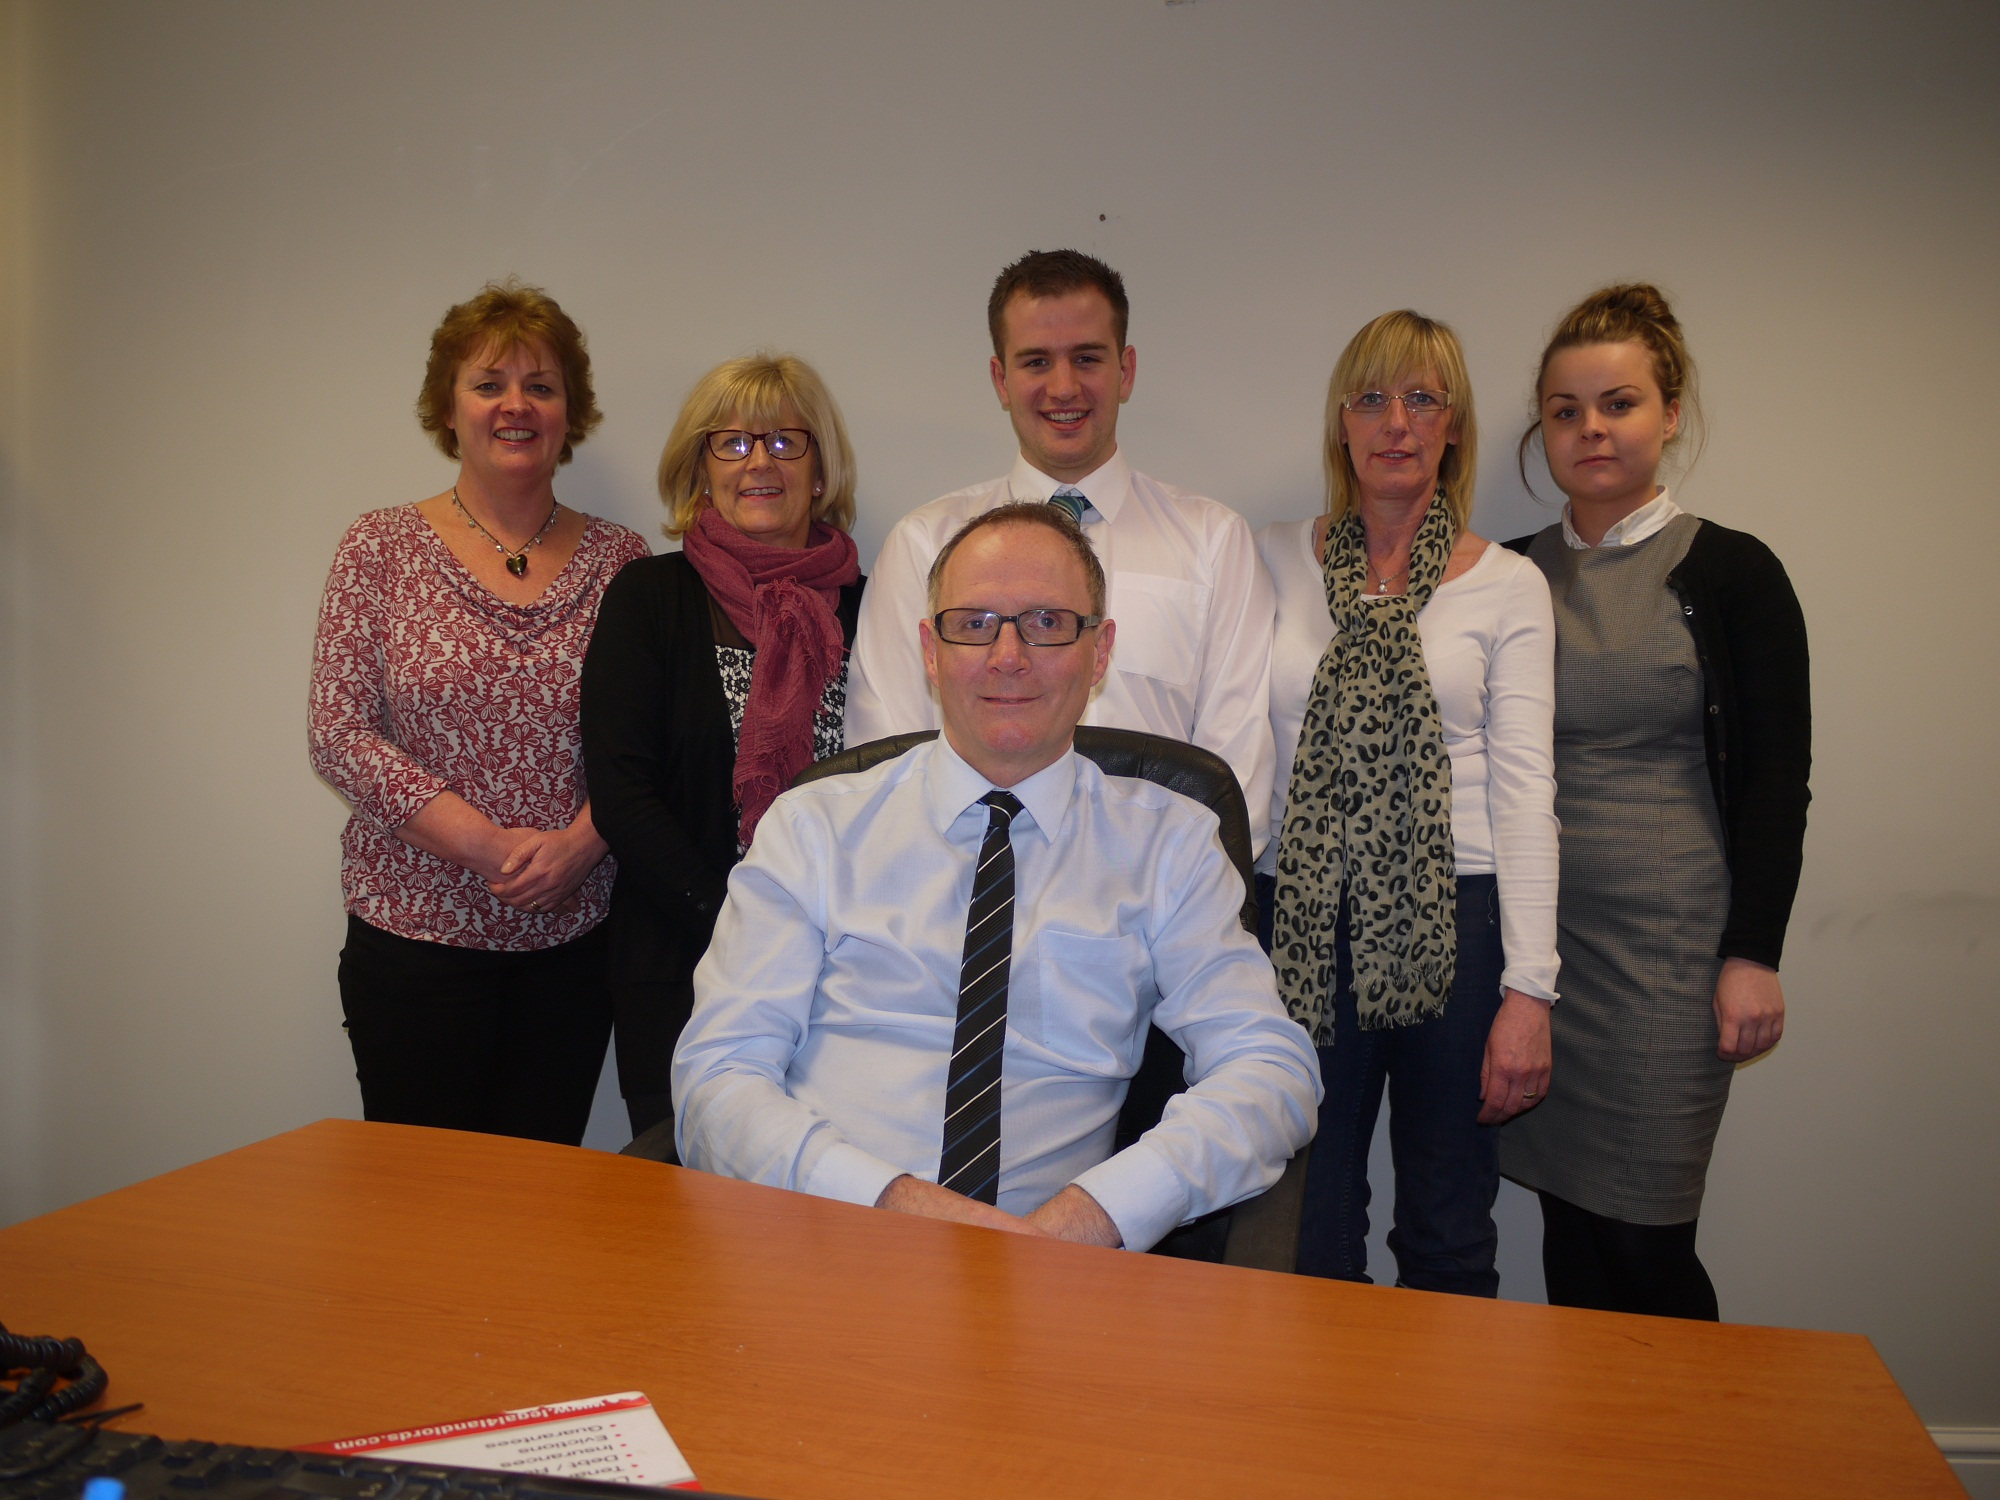 Pictured from left are Parkes & Co staff Lucinda Parkinson (partner), Wendy Ramage, Richard Rhodes,  Karen Hammond and Jessica Parkinson, with partner Andrew Parkinson seated